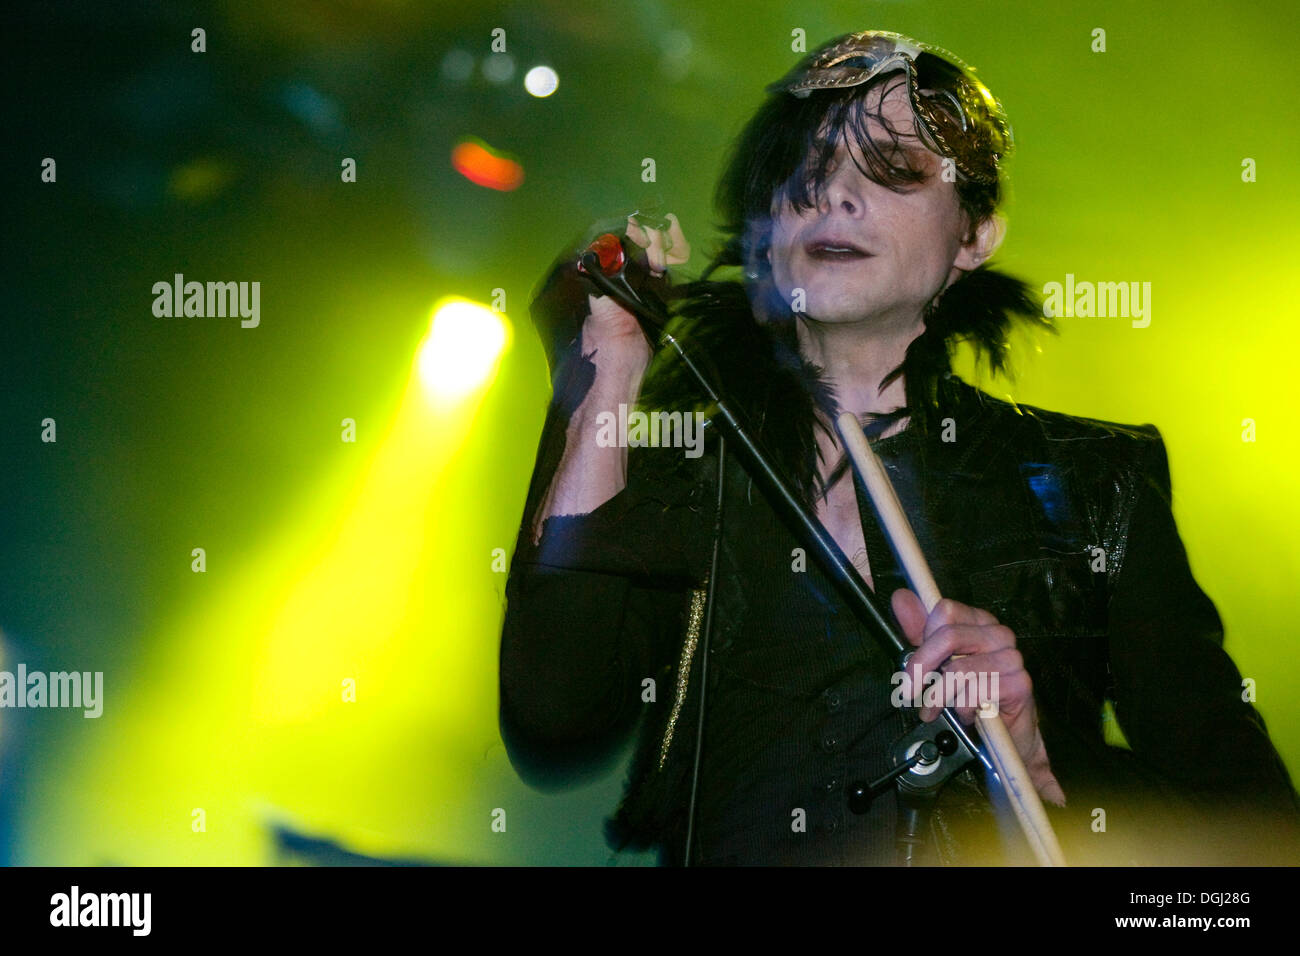 The British glam rock singer and musician Chris Corner live with his music project IAMX at the Schueuer venue, Lucerne - Stock Image